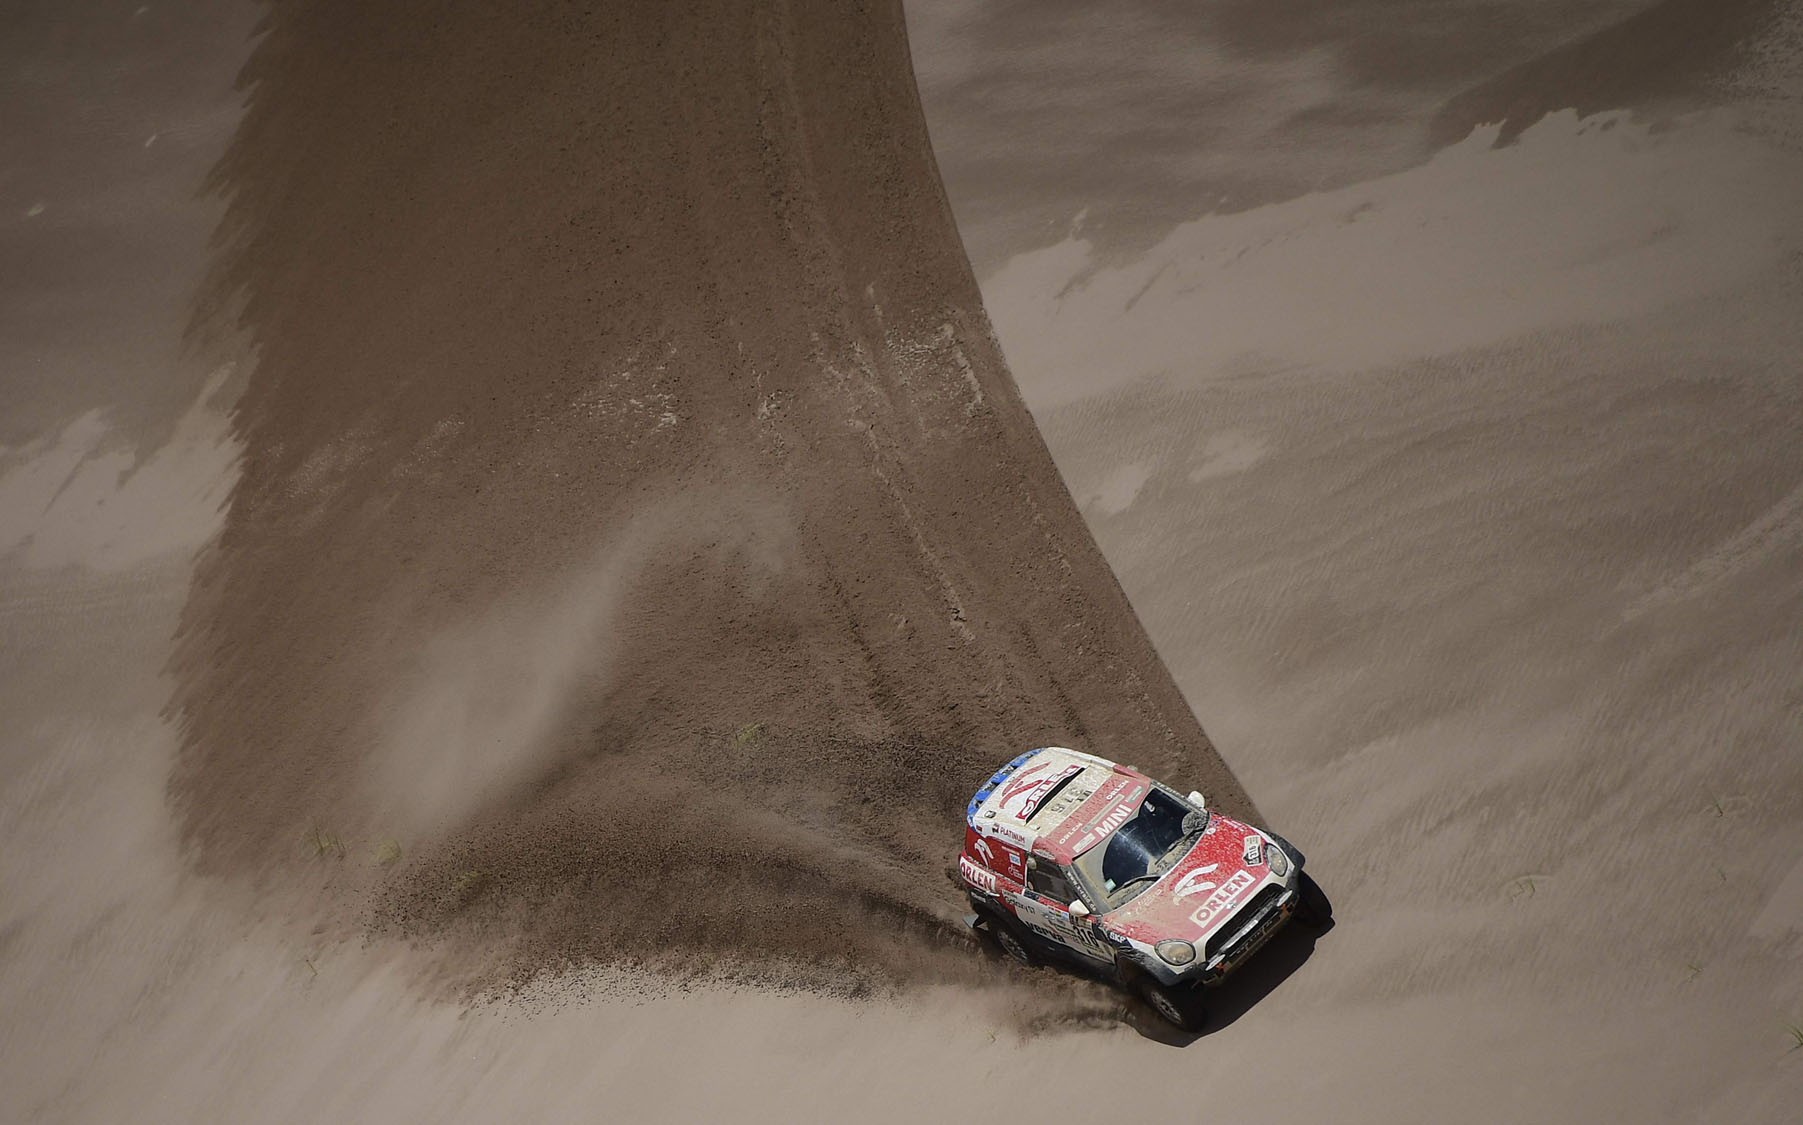 Annual Dakar Rally in South America